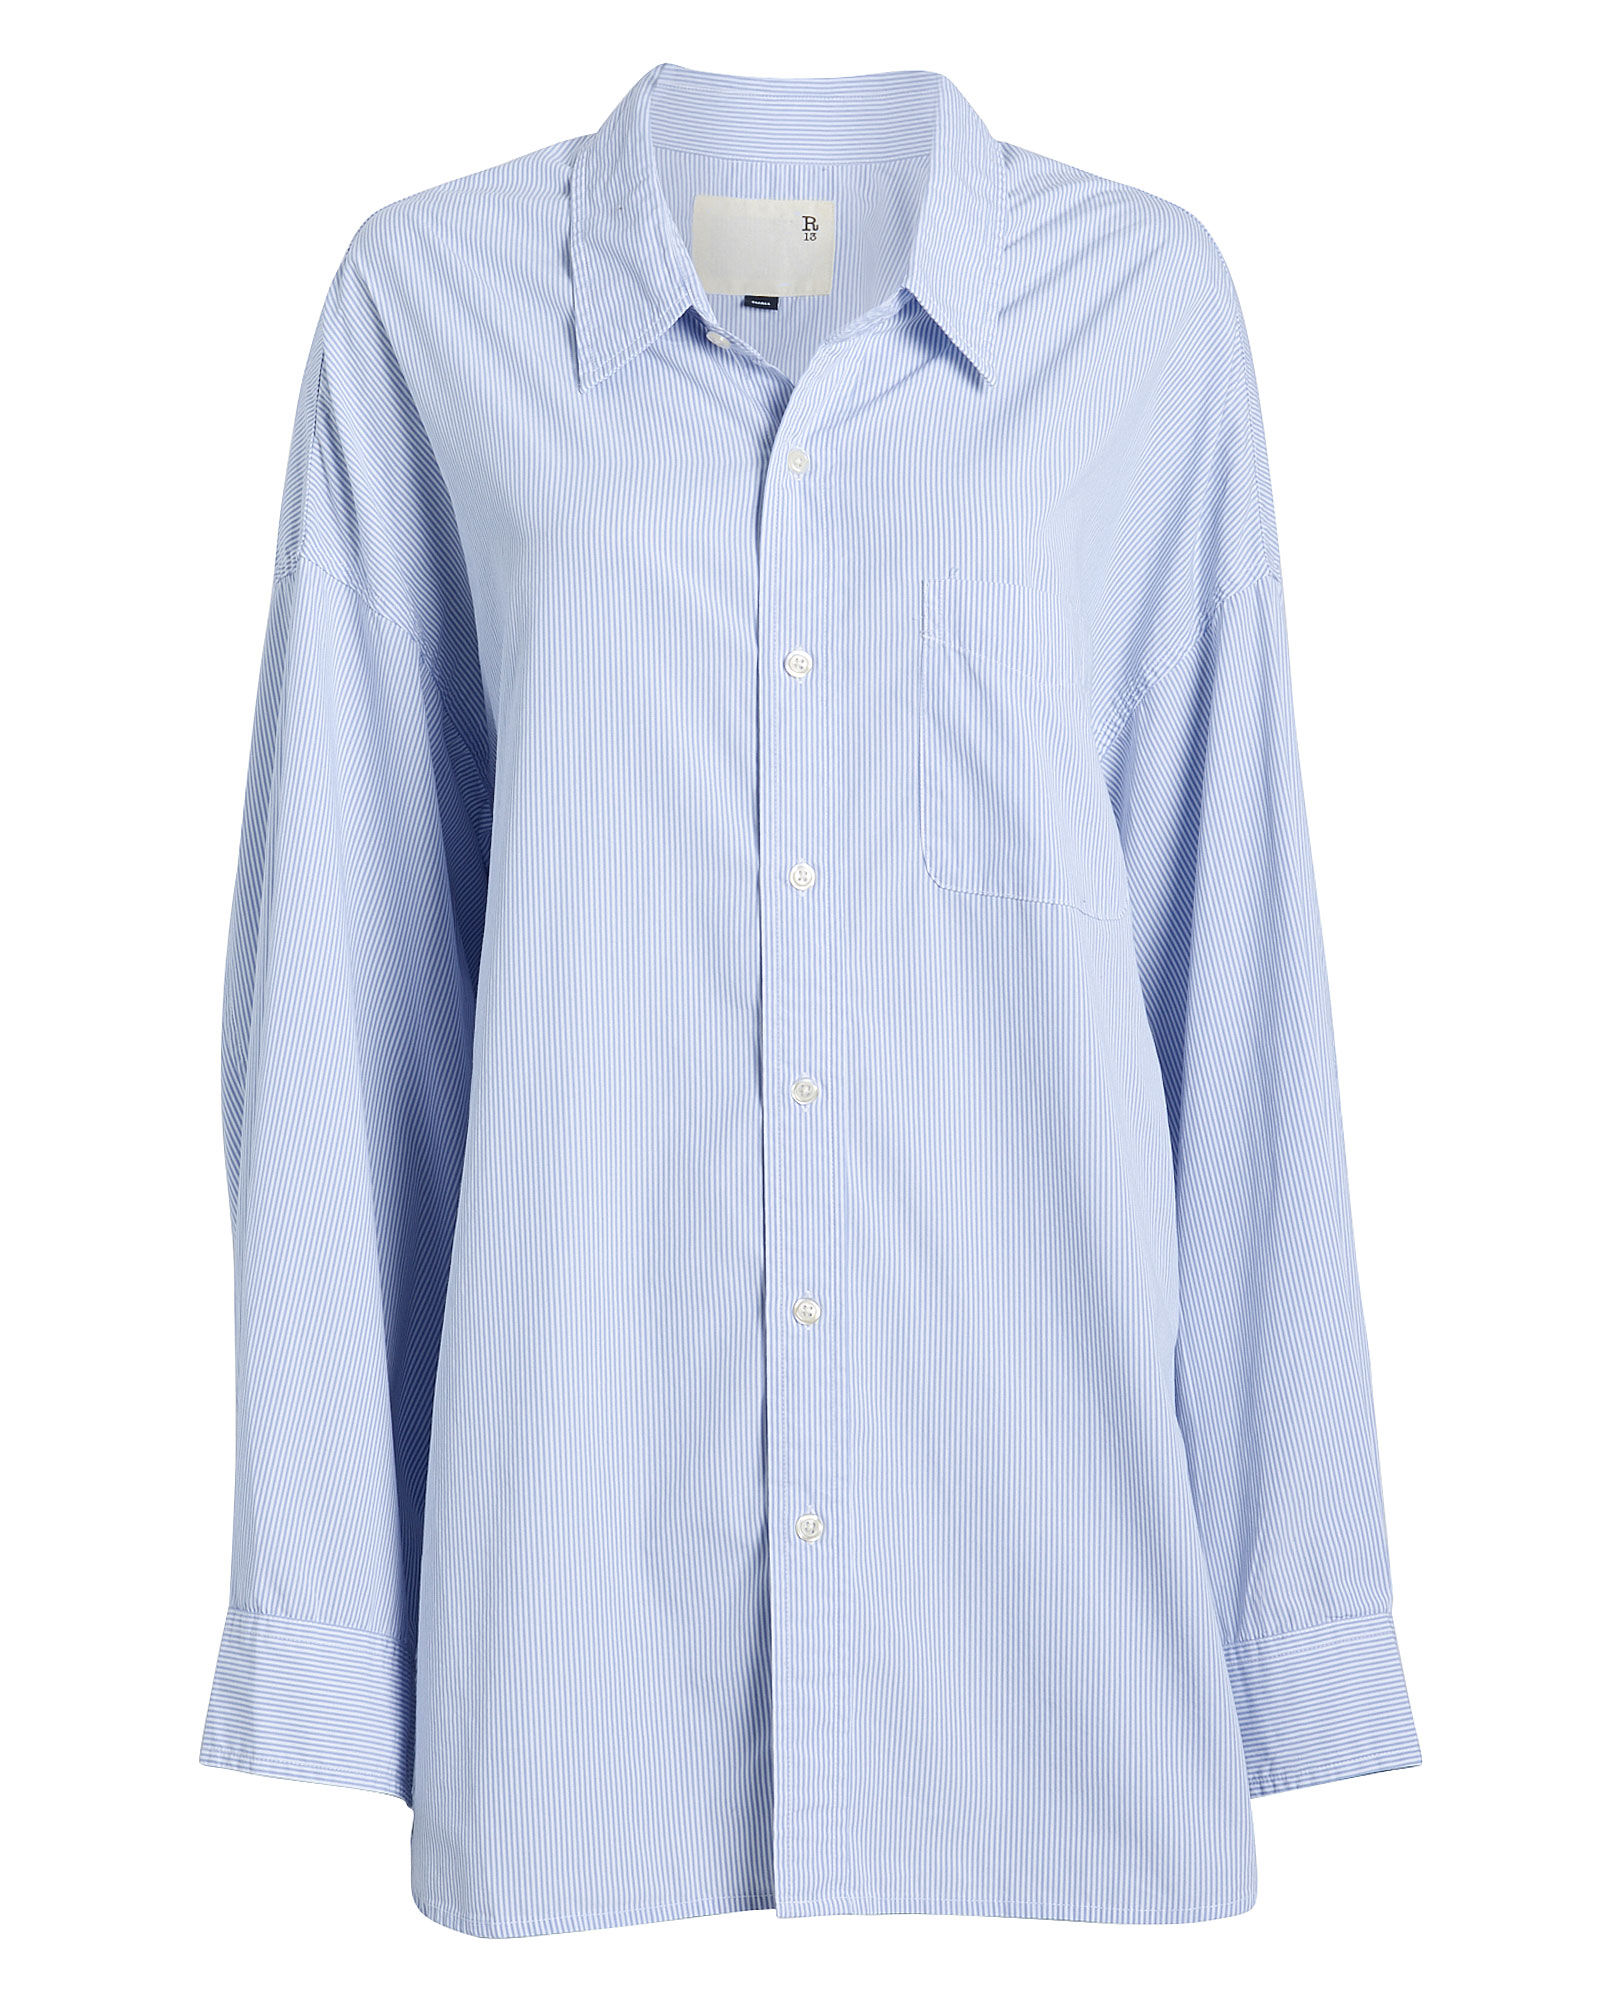 Striped Oxford Poplin Shirt, MULTI, hi-res